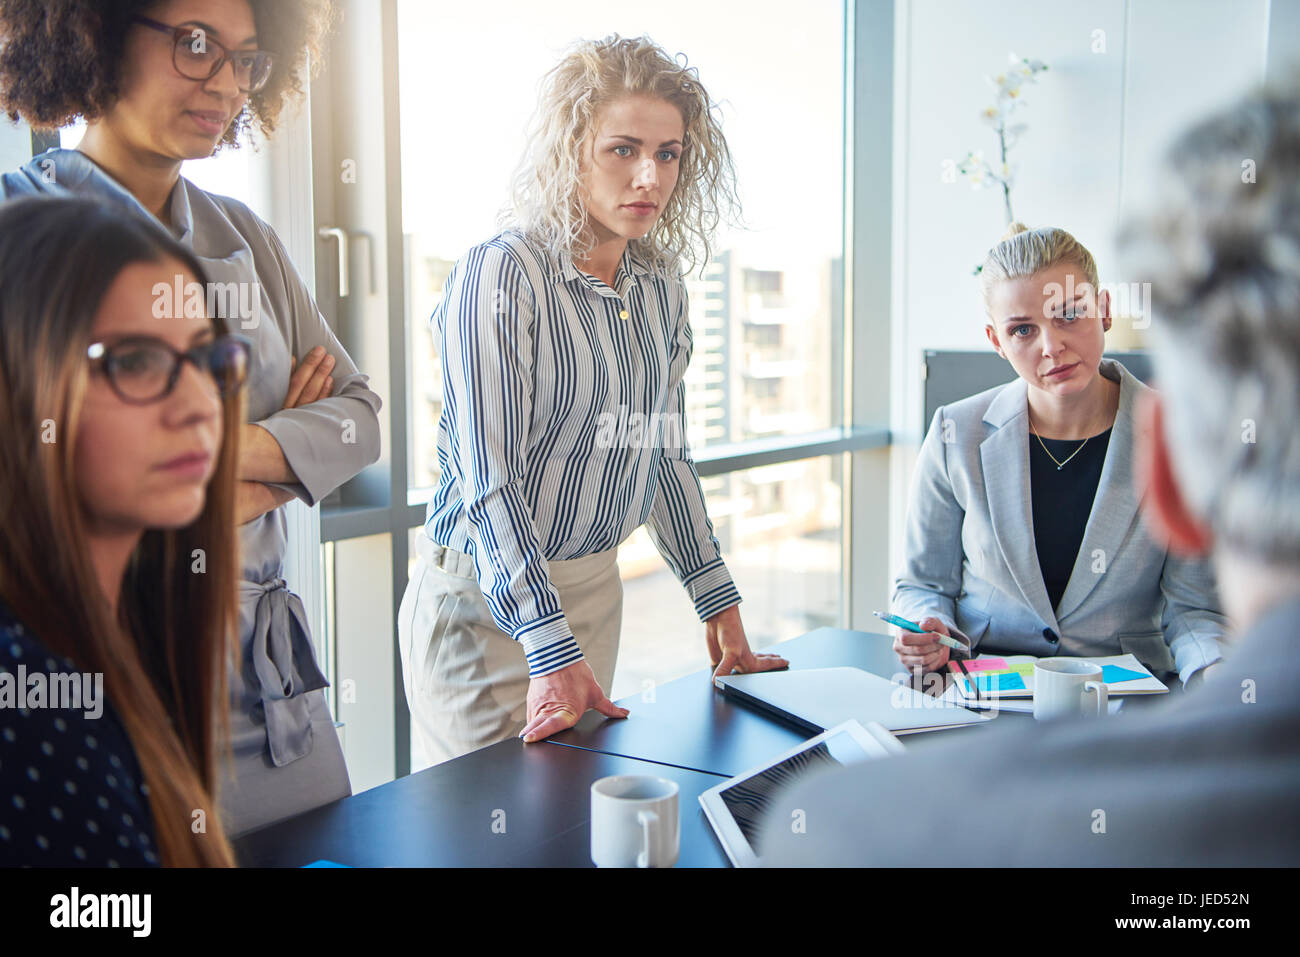 Diverse group of focused colleagues discussing business strategy together during a meeting in an office boardroom - Stock Image